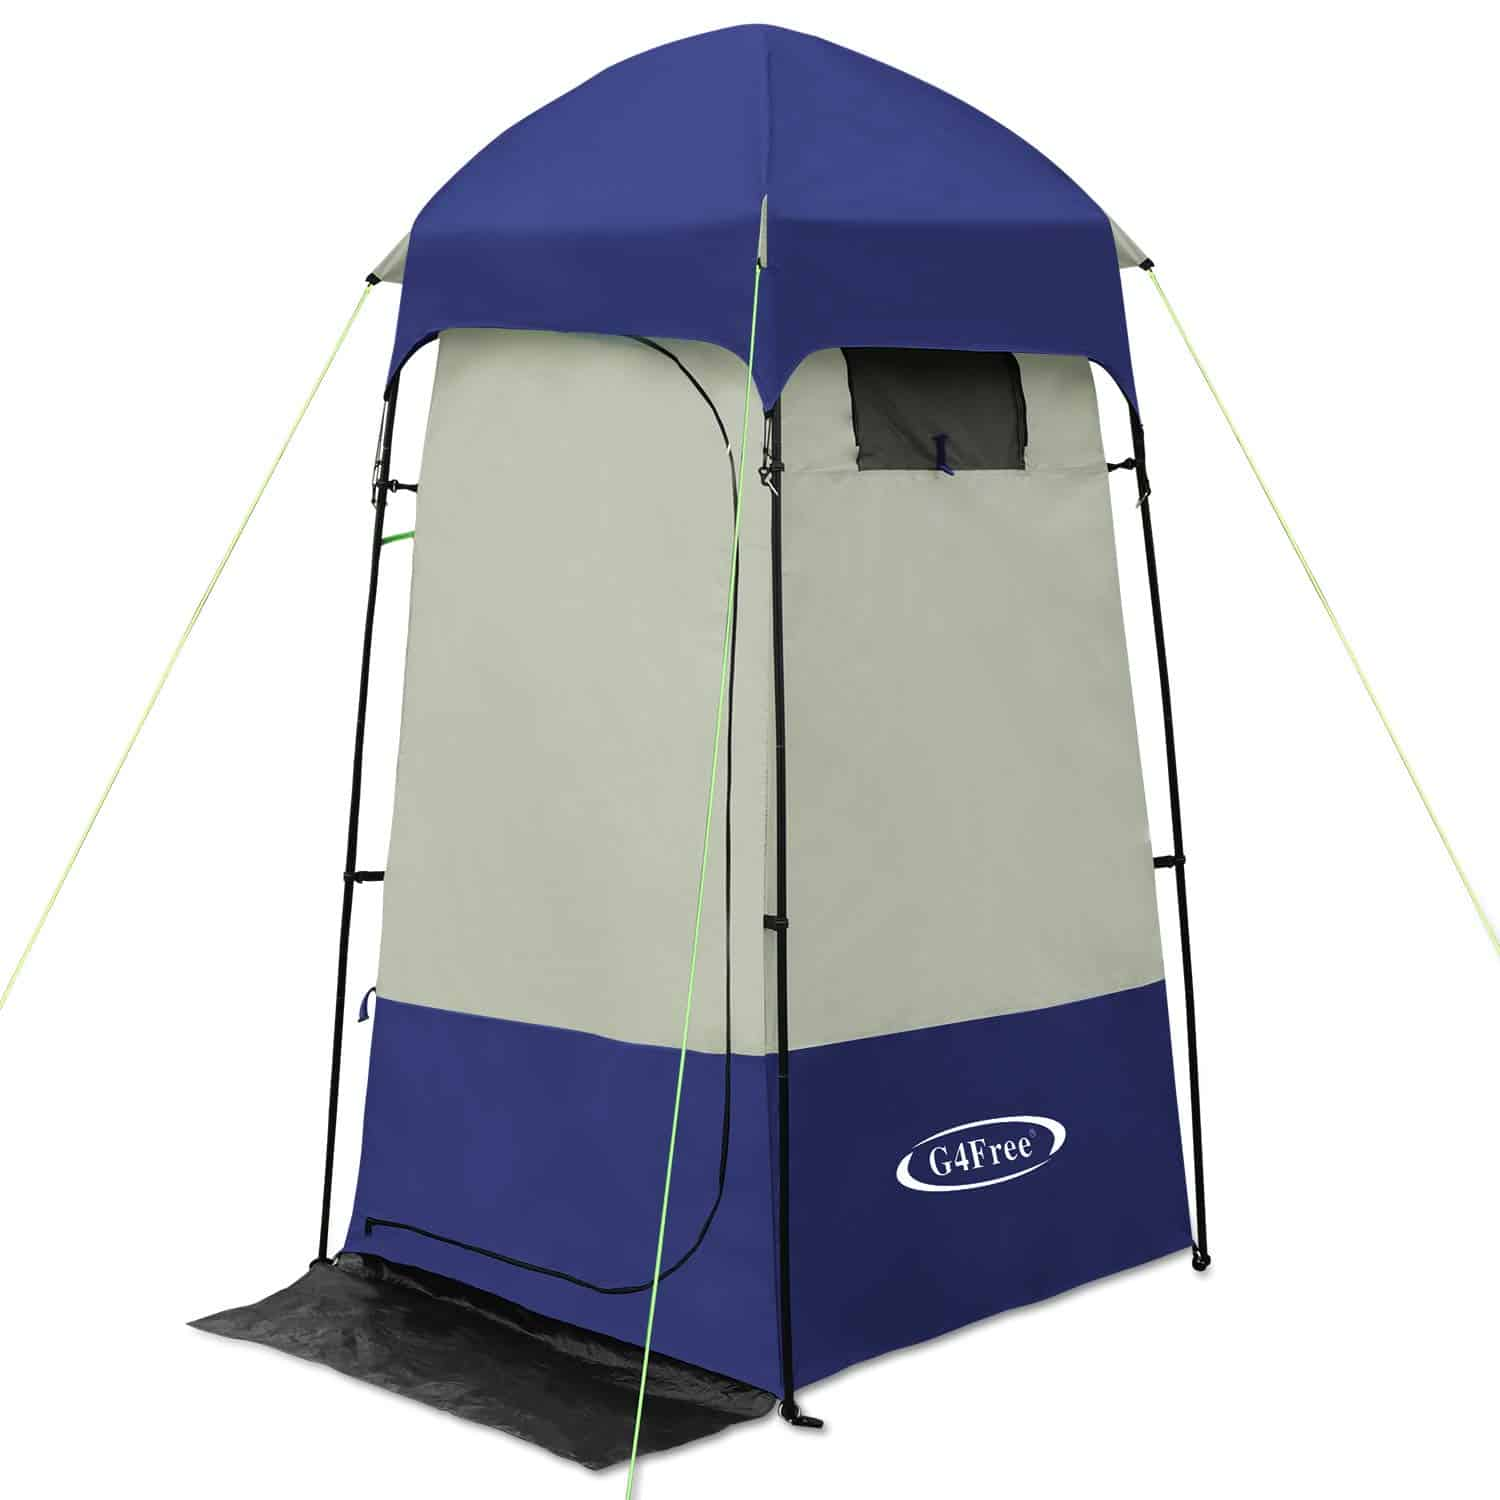 G4Free Privacy Shelter Tents Dressing Changing Room Tent